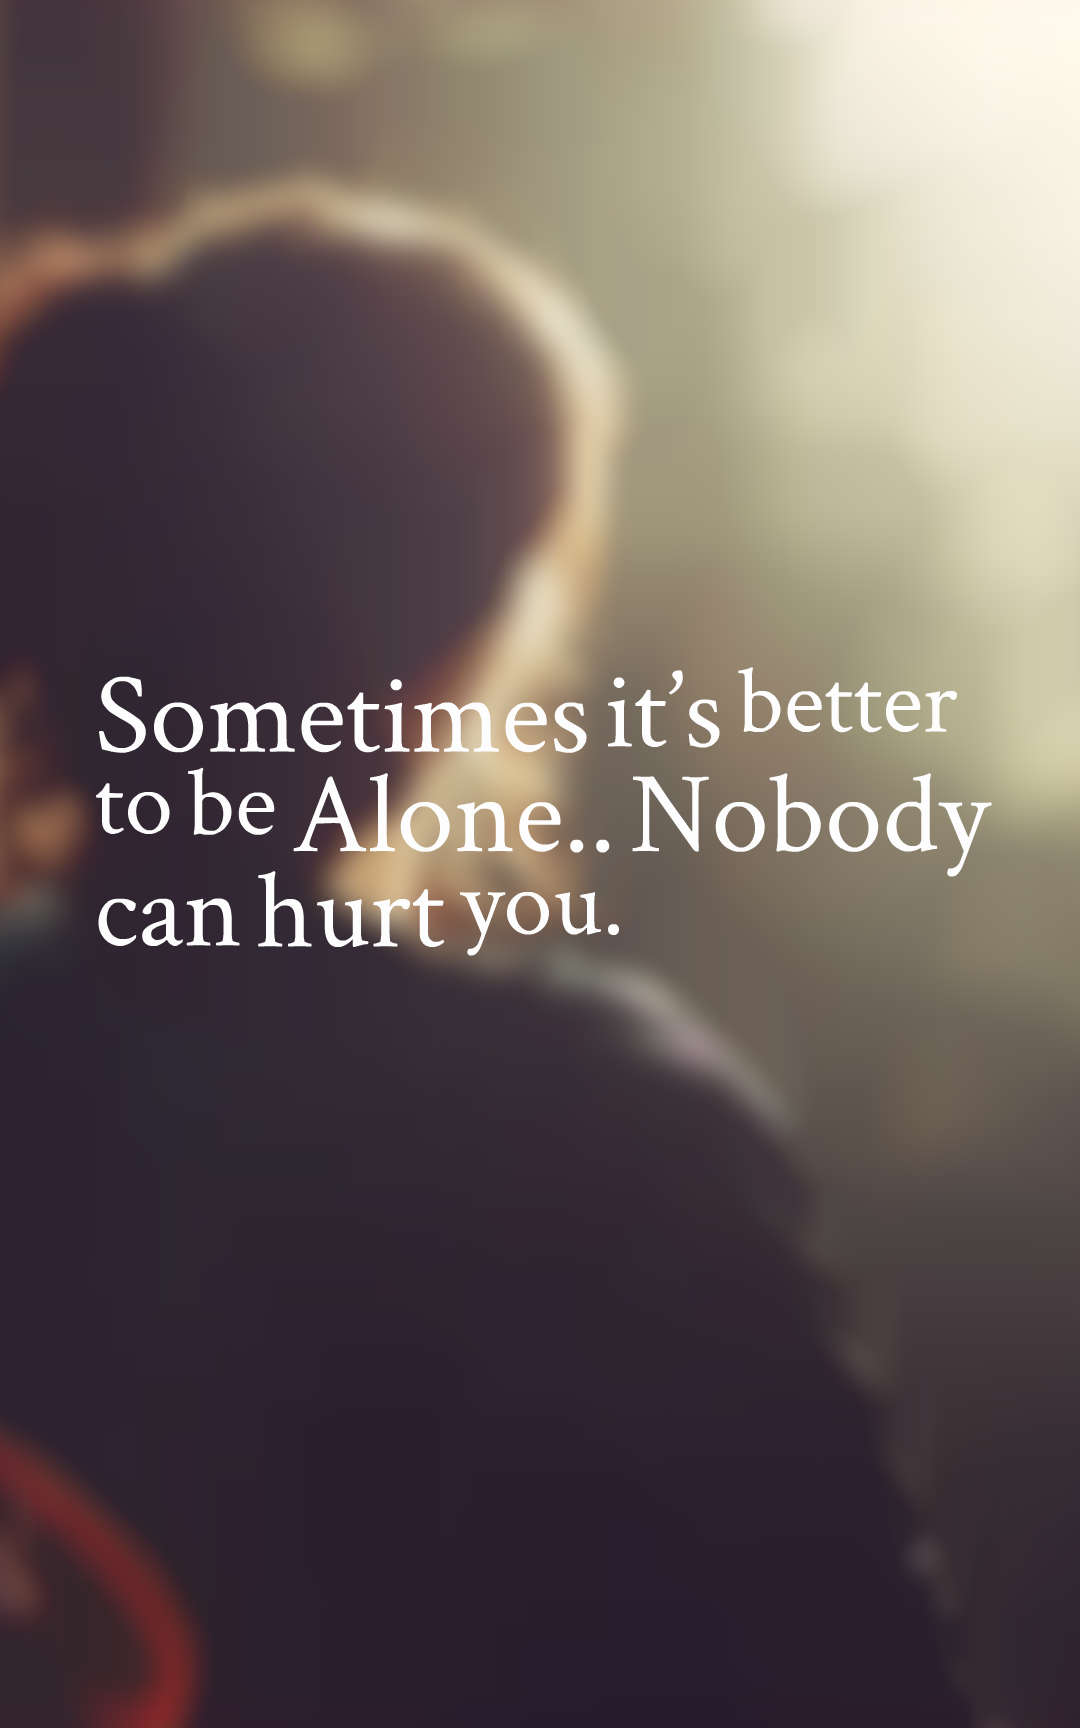 Best Loneliness Quotes 45 Lonely Quotes With Images